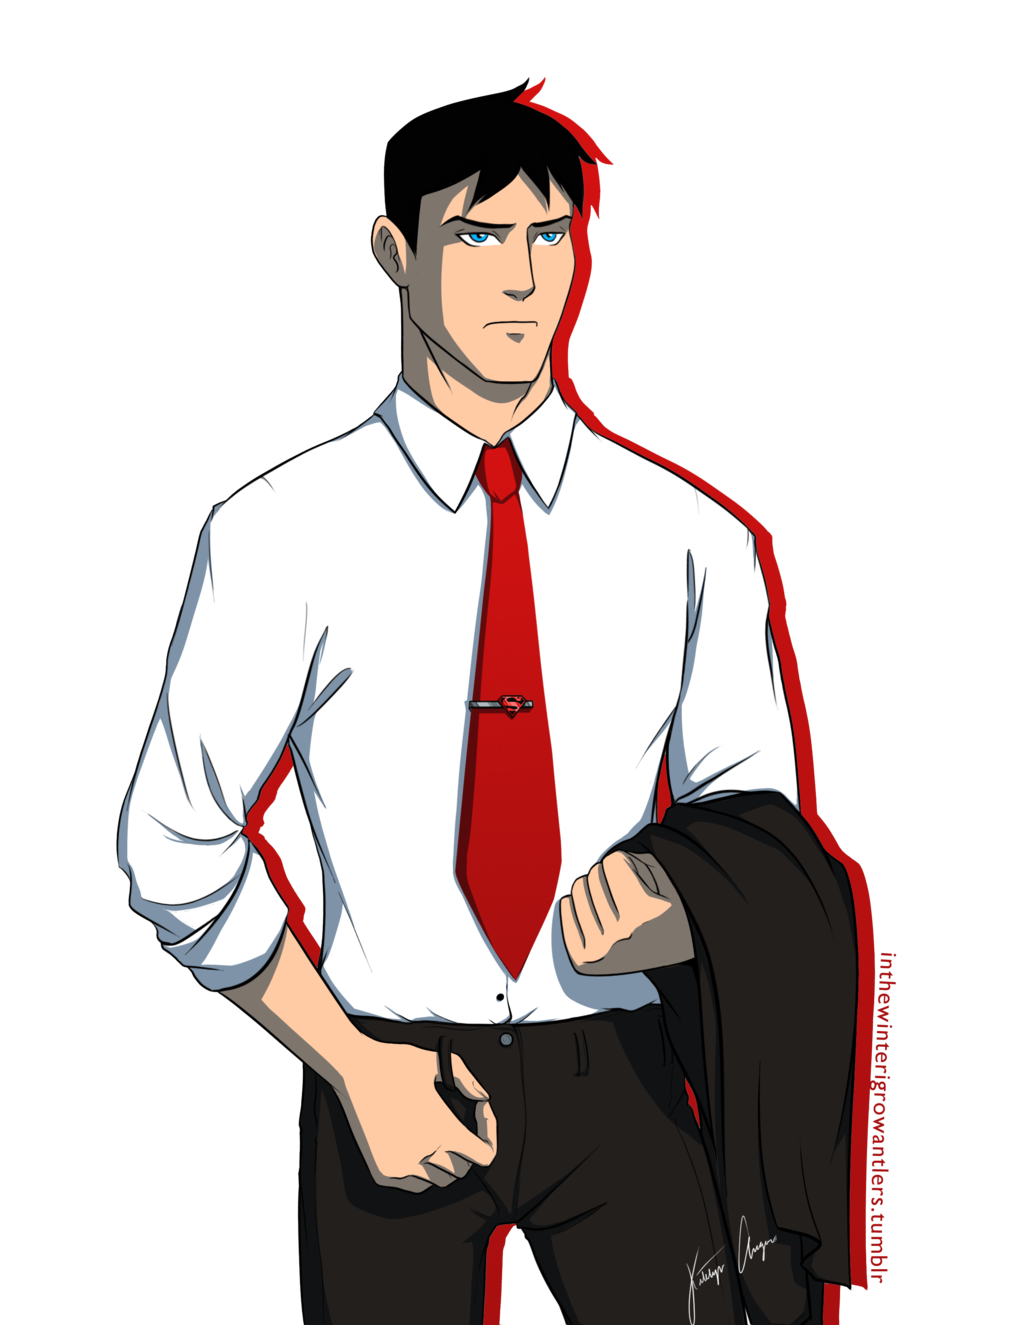 Charming conner kent by. Confused clipart qualm